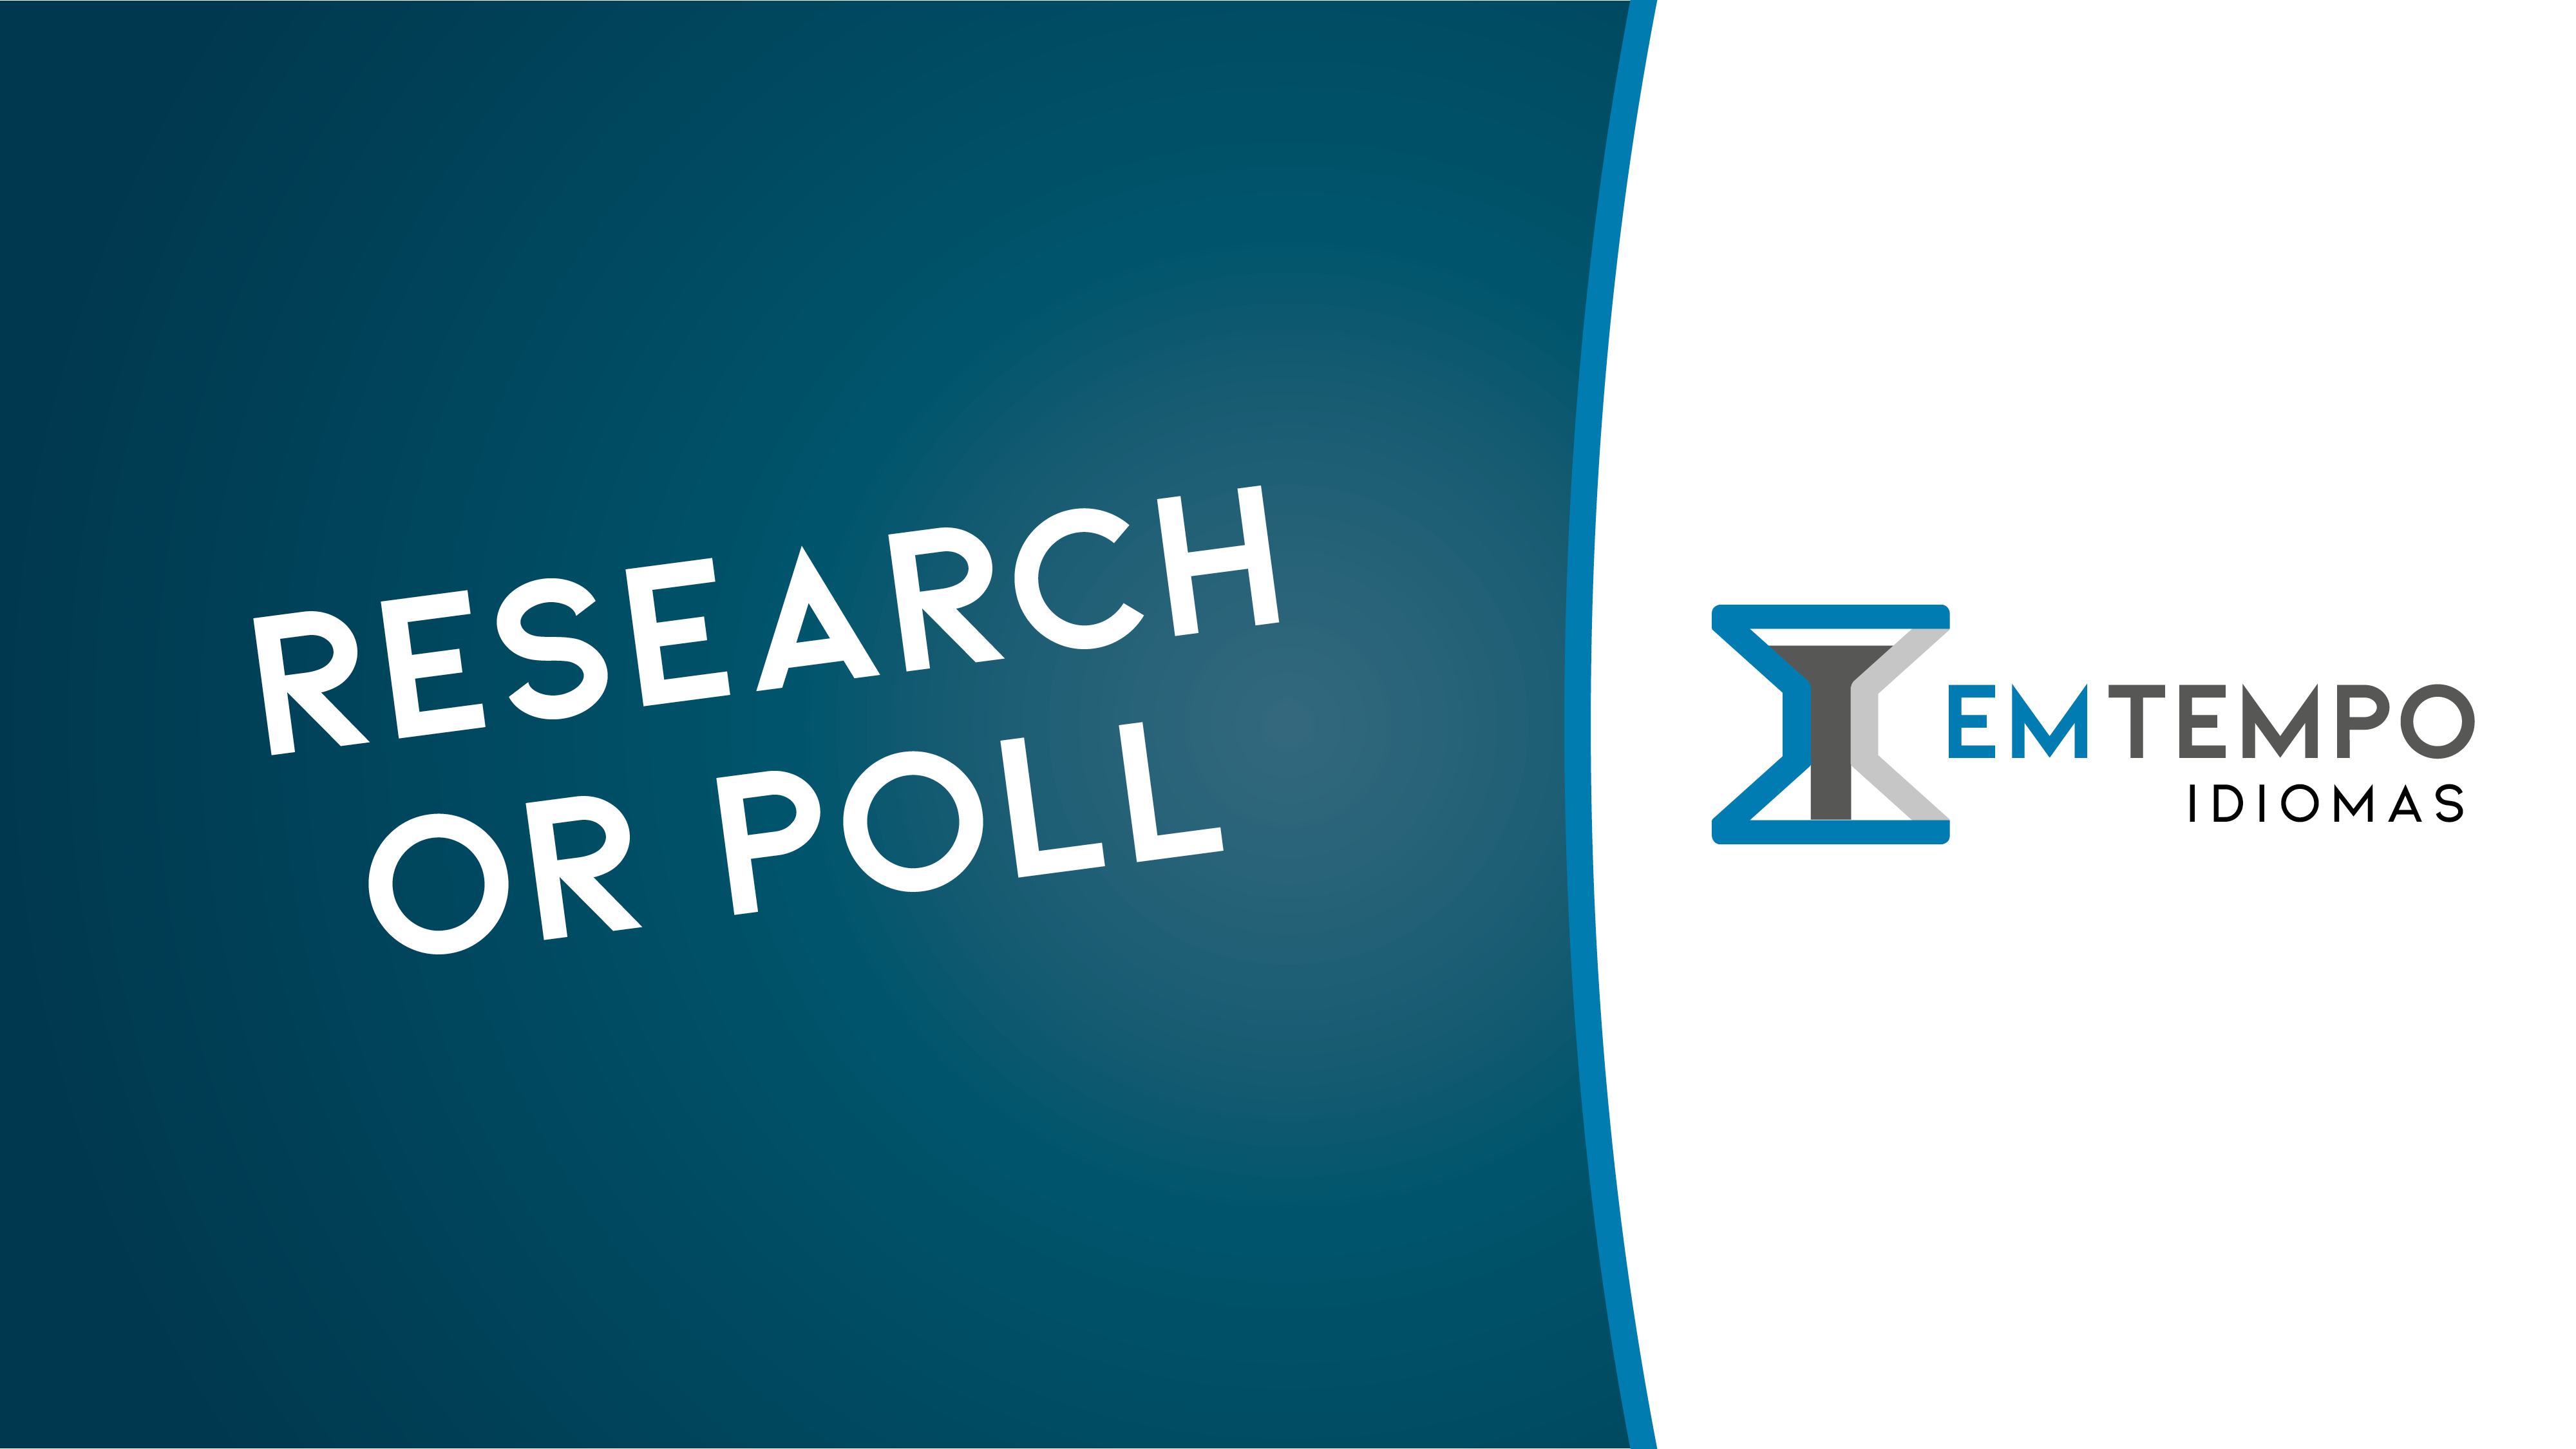 Research or poll